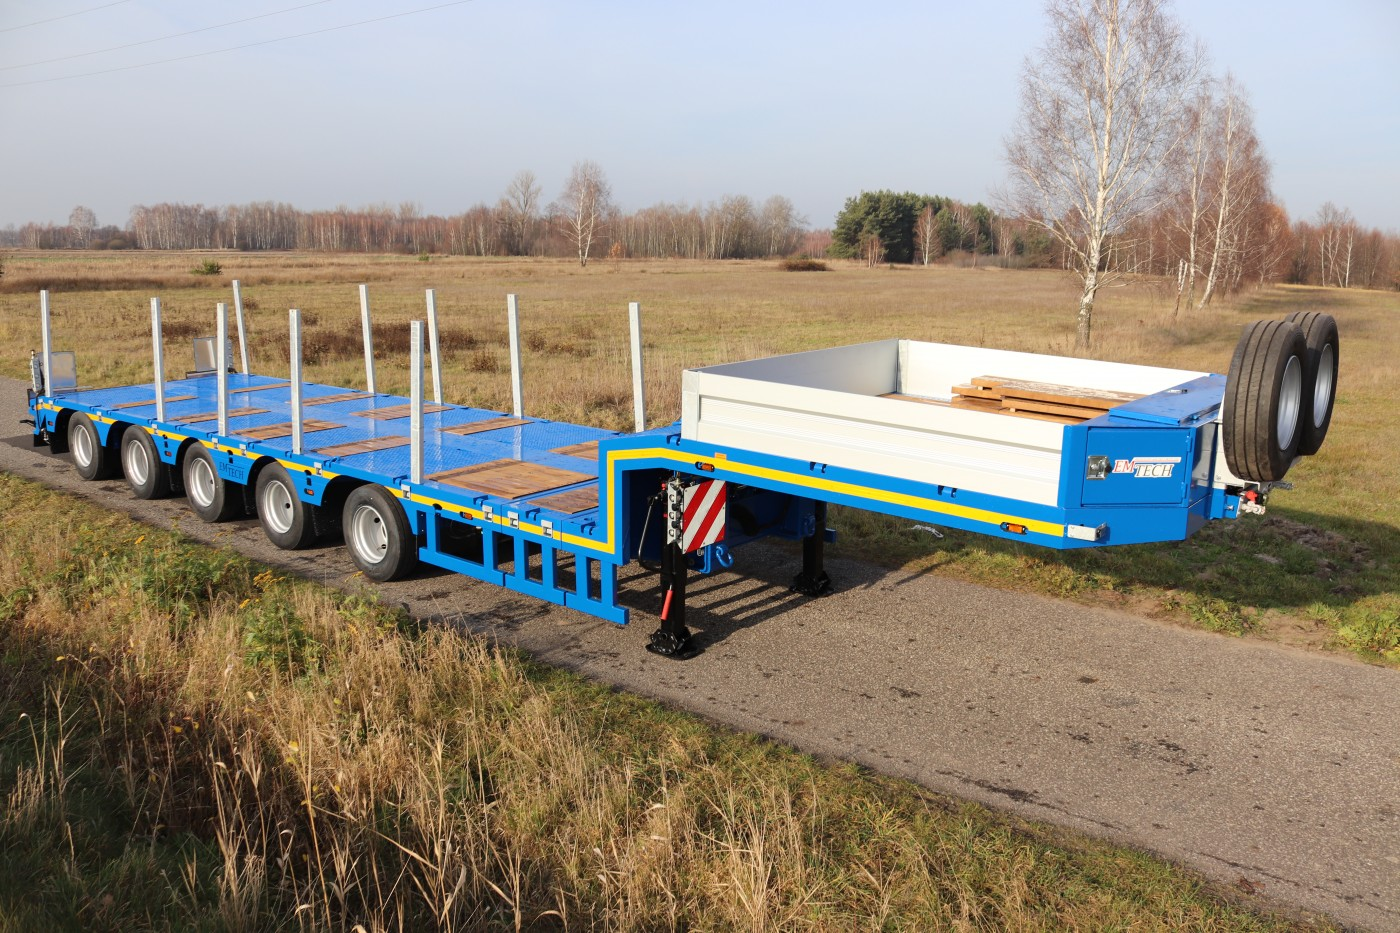 NPR36SKOS with a sloping loading deck and additional construction cavities